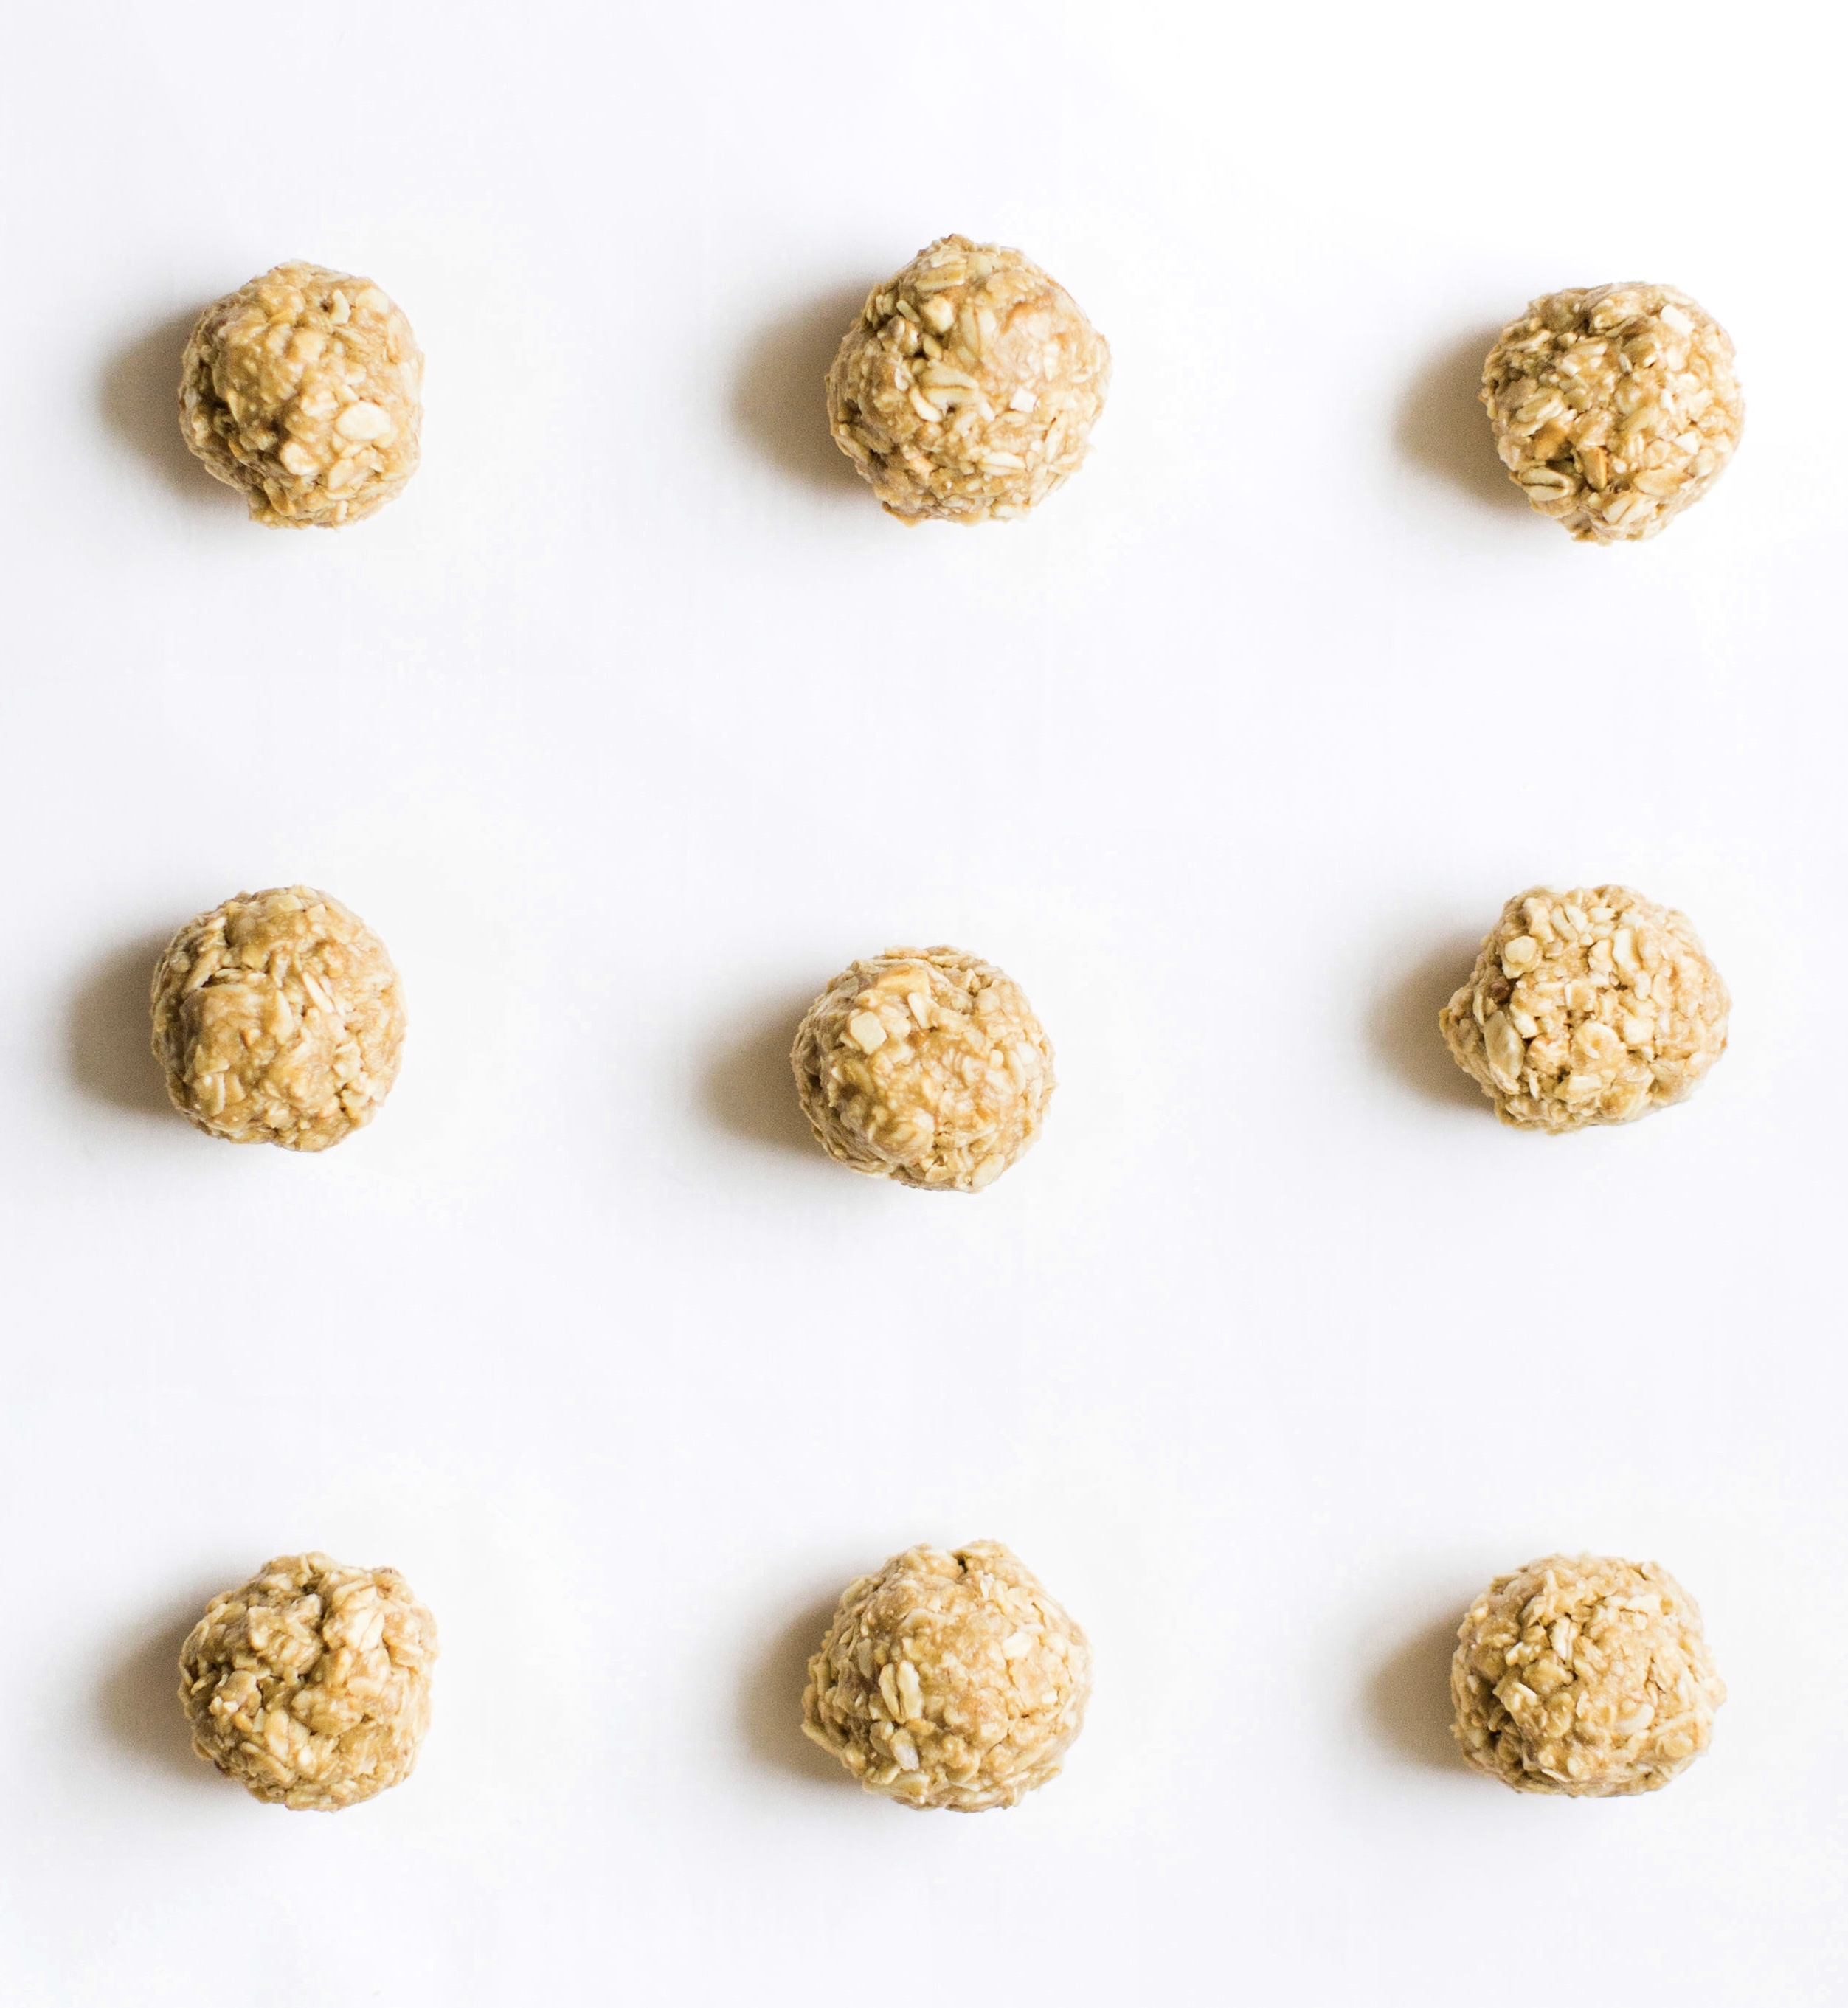 These no-bake energy bites are easy to make, the perfect combination of sweet and salty, have plenty of added protein thanks to the peanut butter, and kids absolutely love them because they're basically deliciousno-bake cookies! Click through for the recipe. #snack #energybites #nobake #nobakecookies #healthysnack #kidssnack | glitterinc.com | @glitterinc